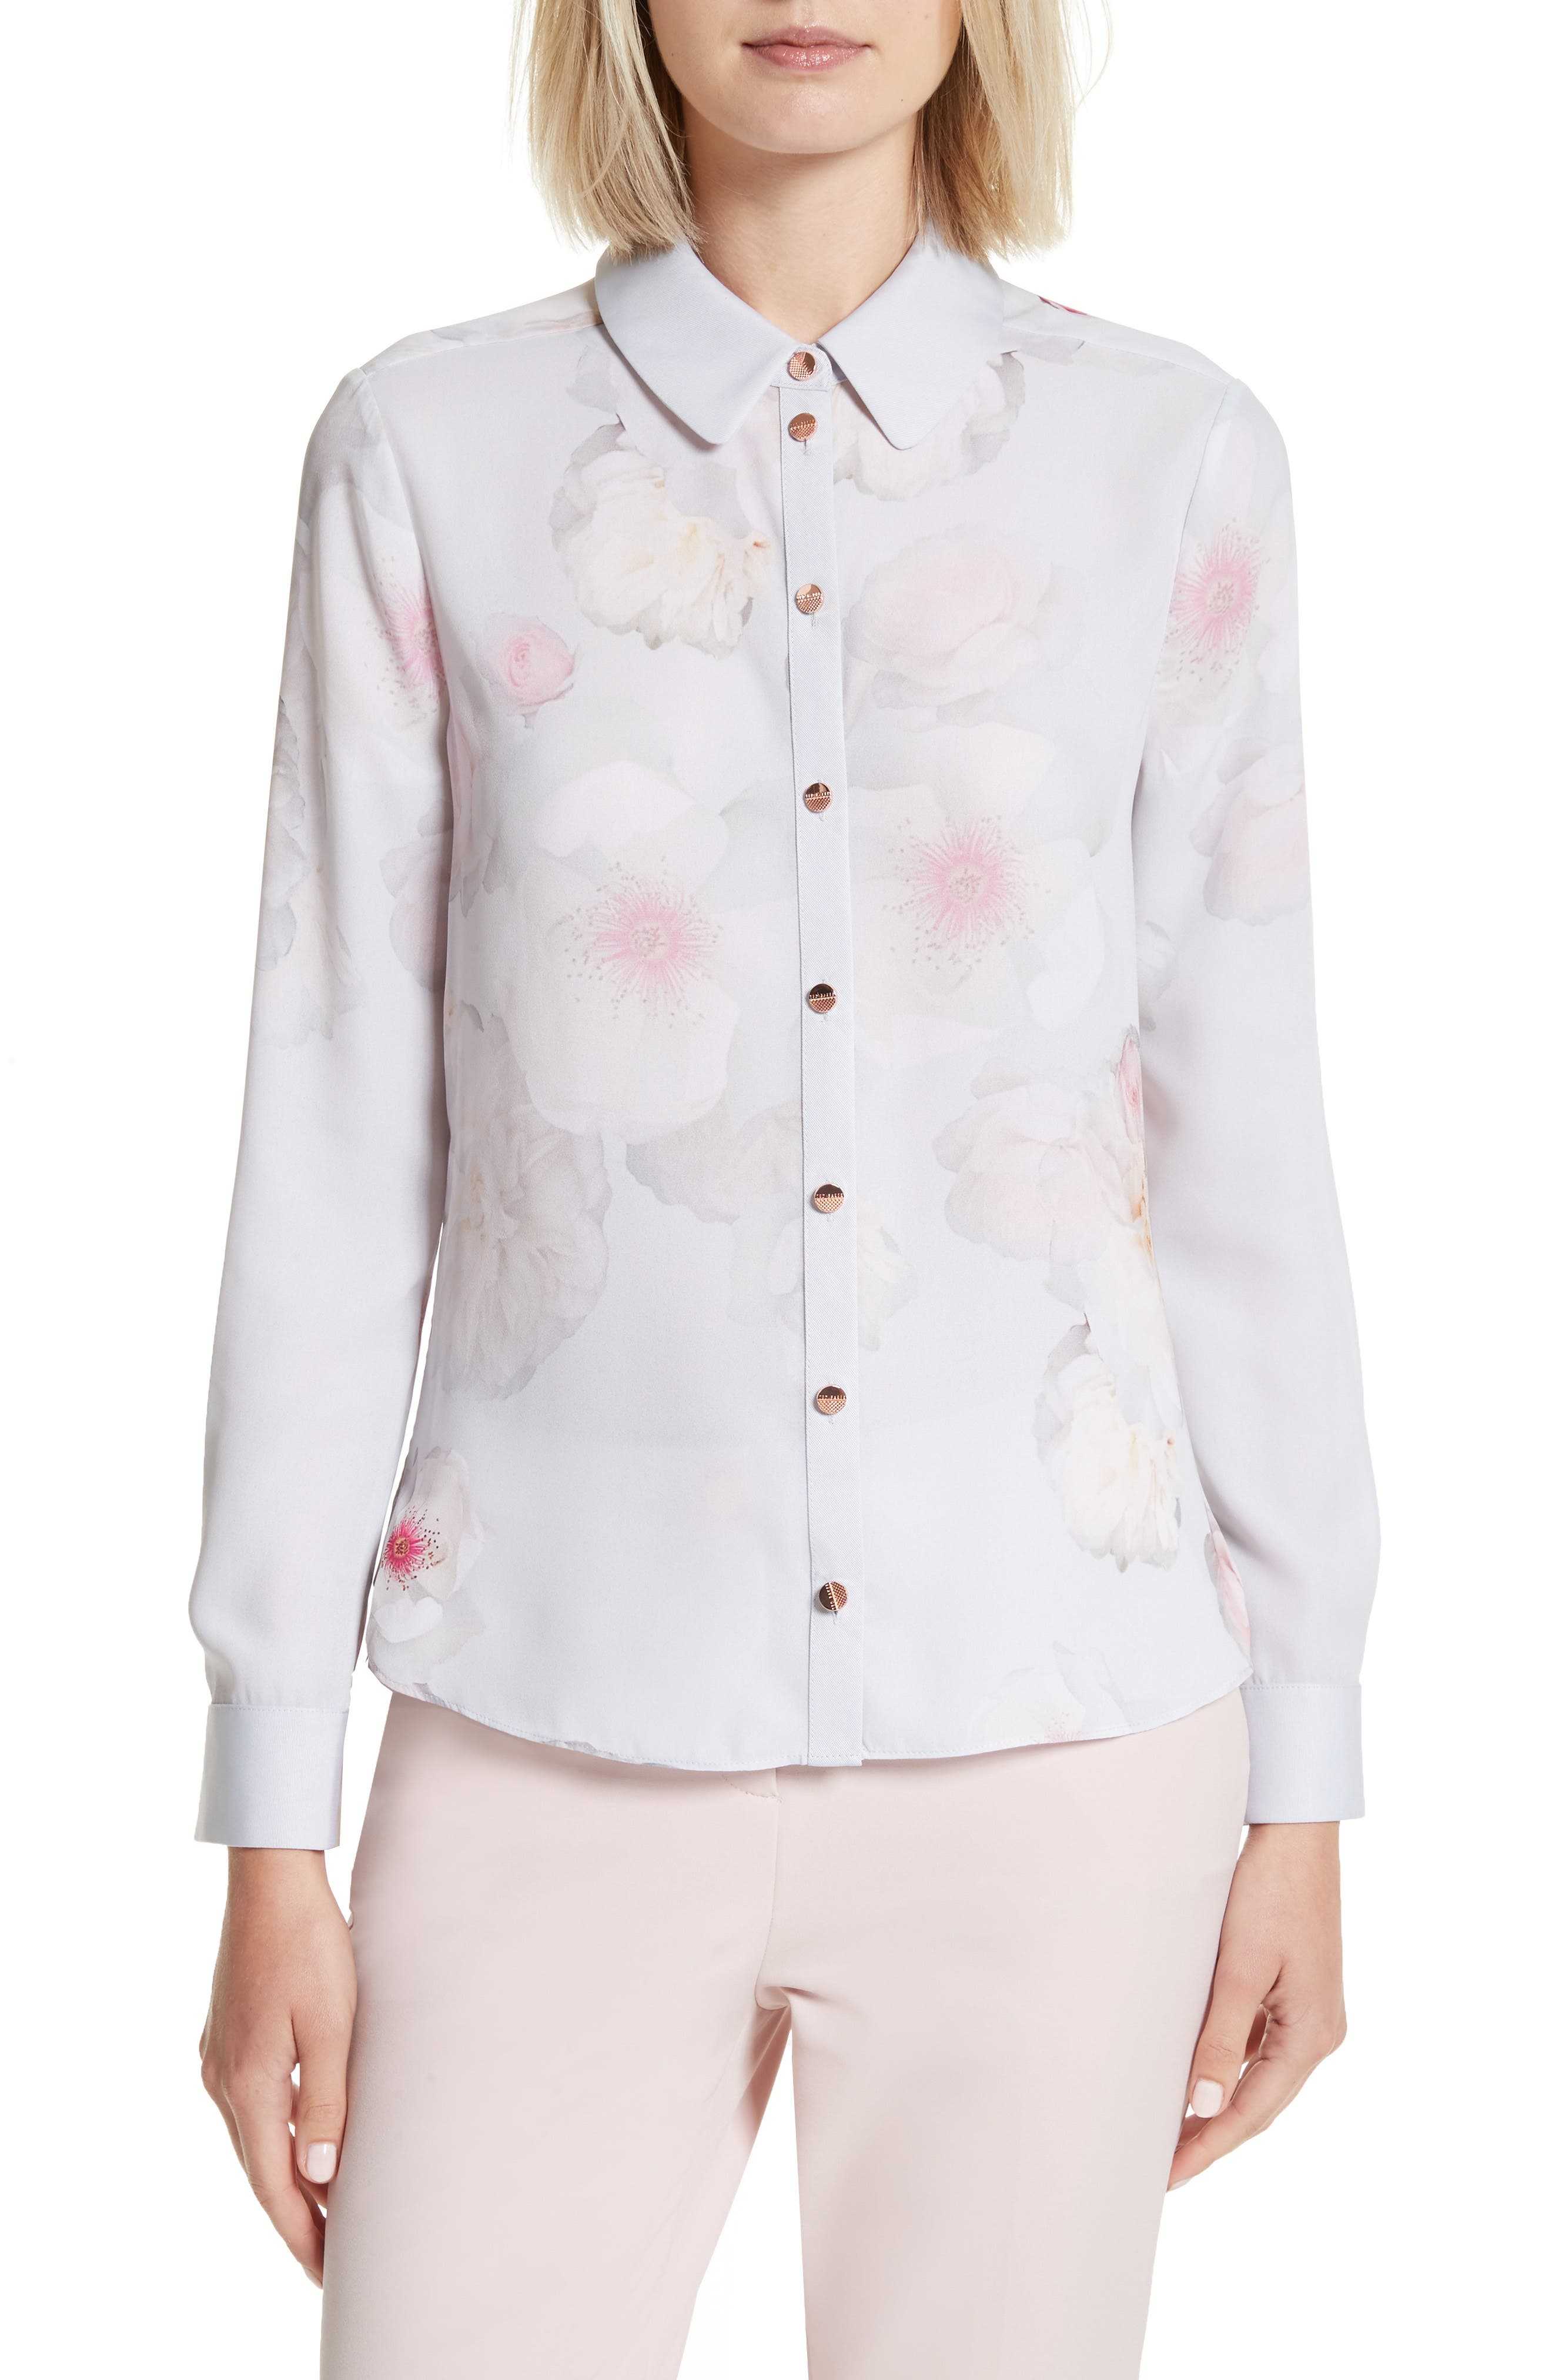 Relar Chelsea Grey Flower Print Shirt,                         Main,                         color, Mid Grey